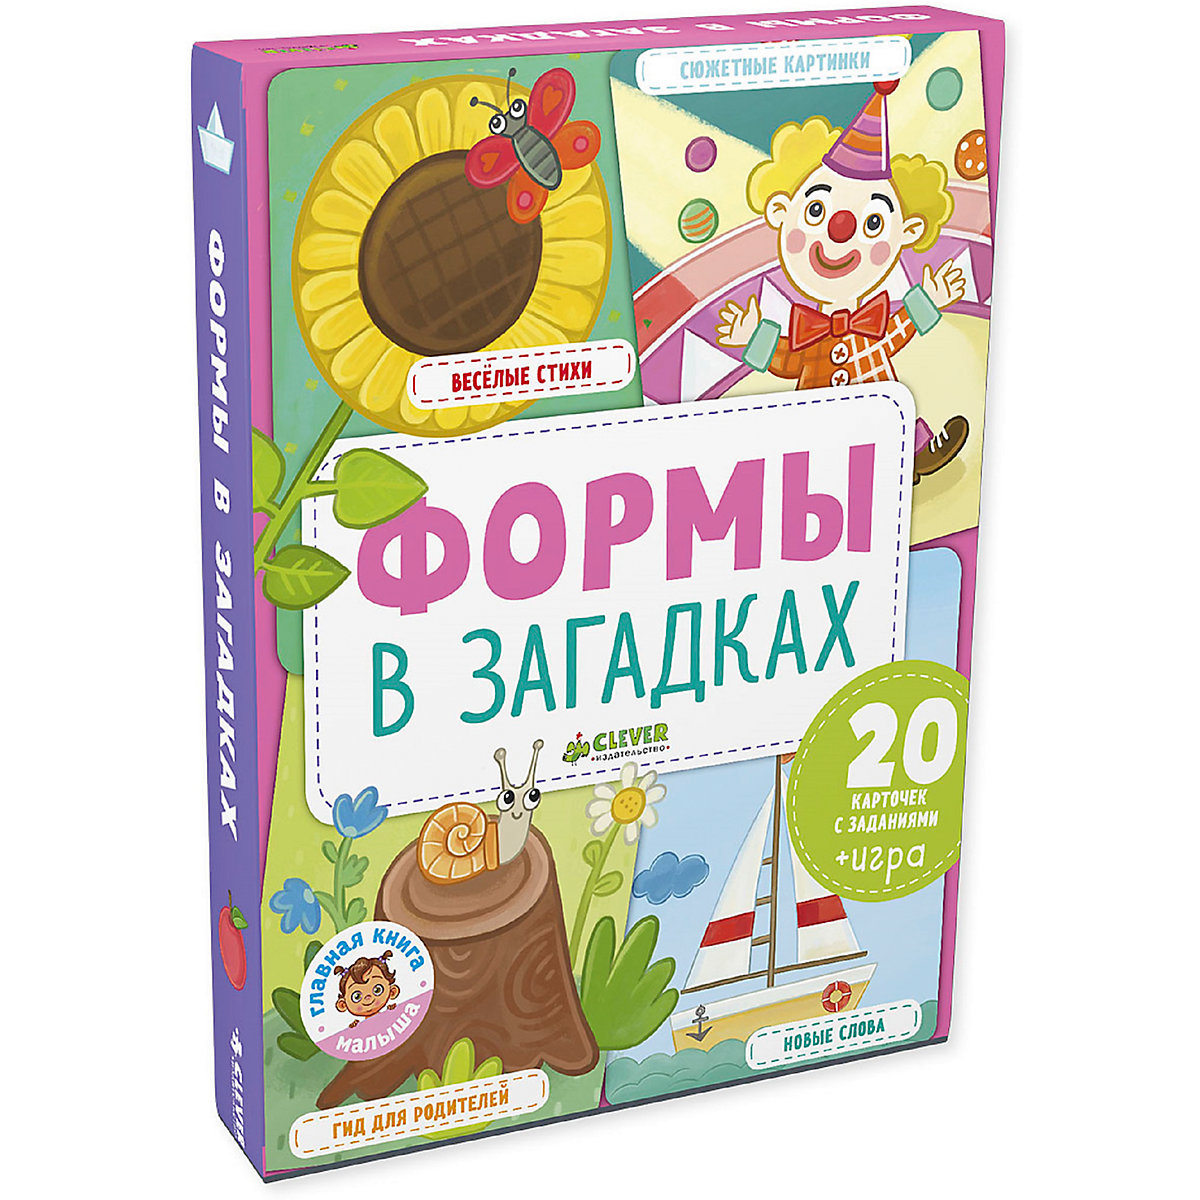 Books CLEVER 8890283 Children Education Encyclopedia Alphabet Dictionary Book For Baby MTpromo